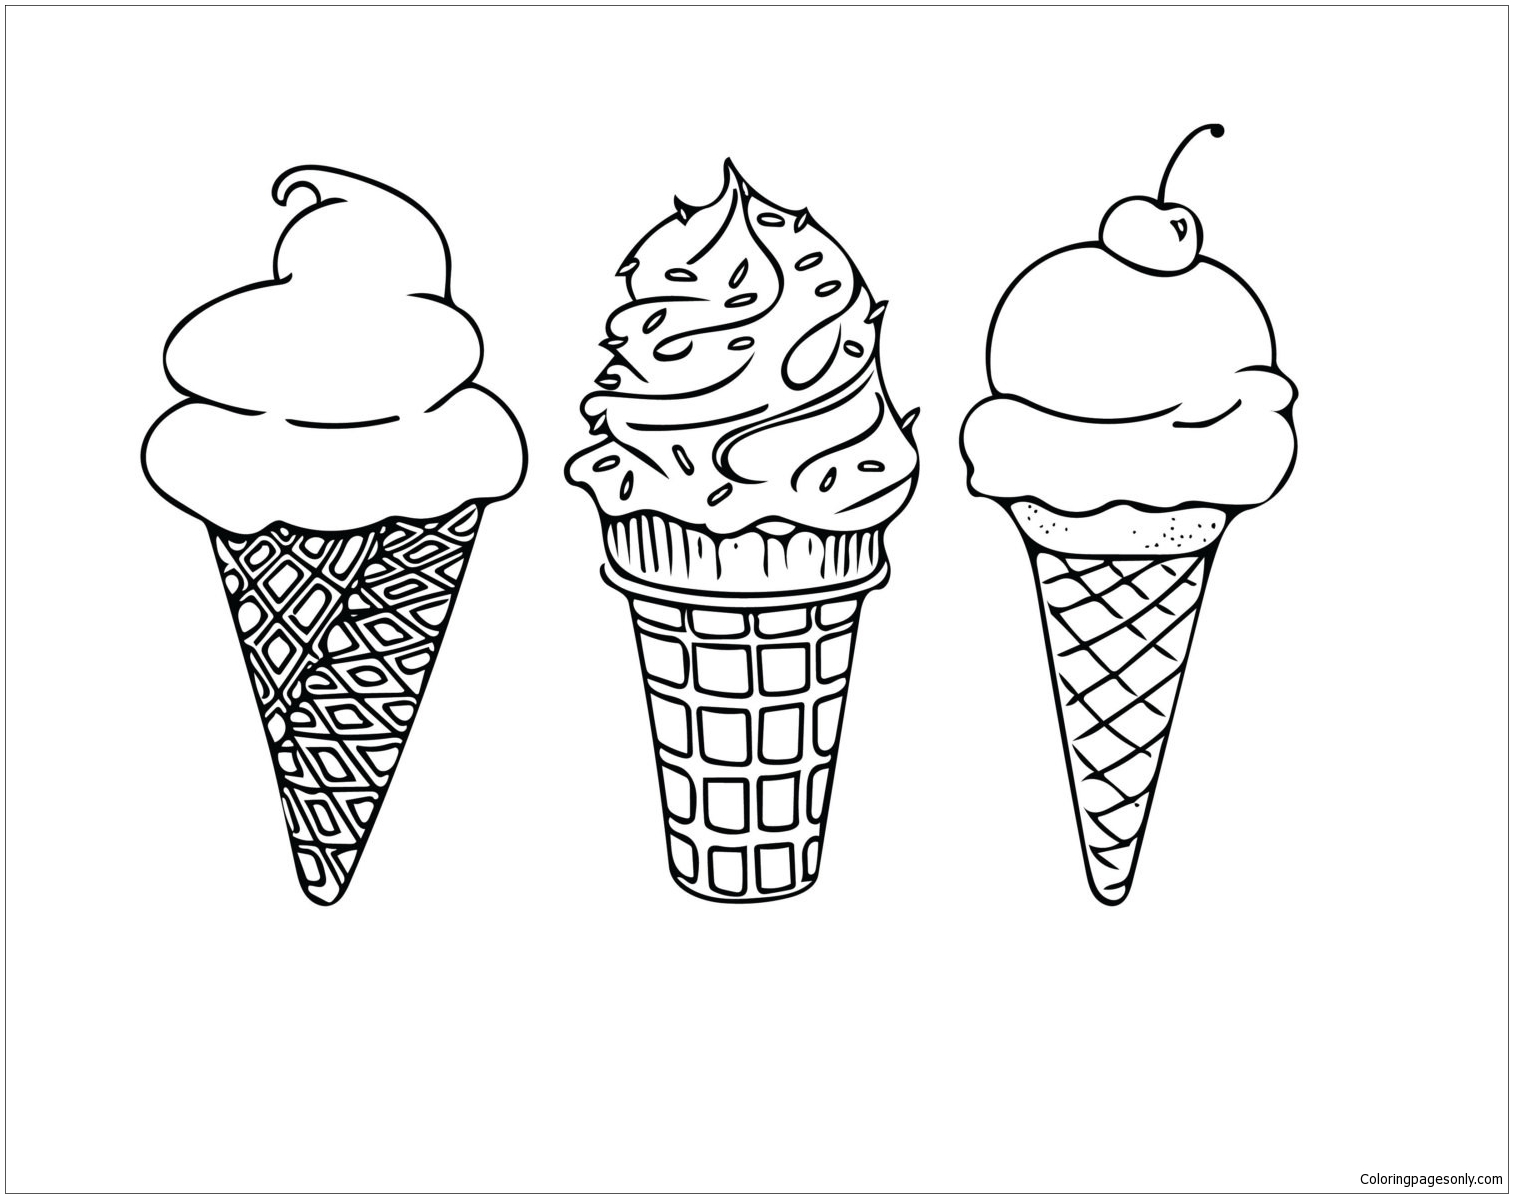 Ice Cream 4 Coloring Page - Free Coloring Pages Online